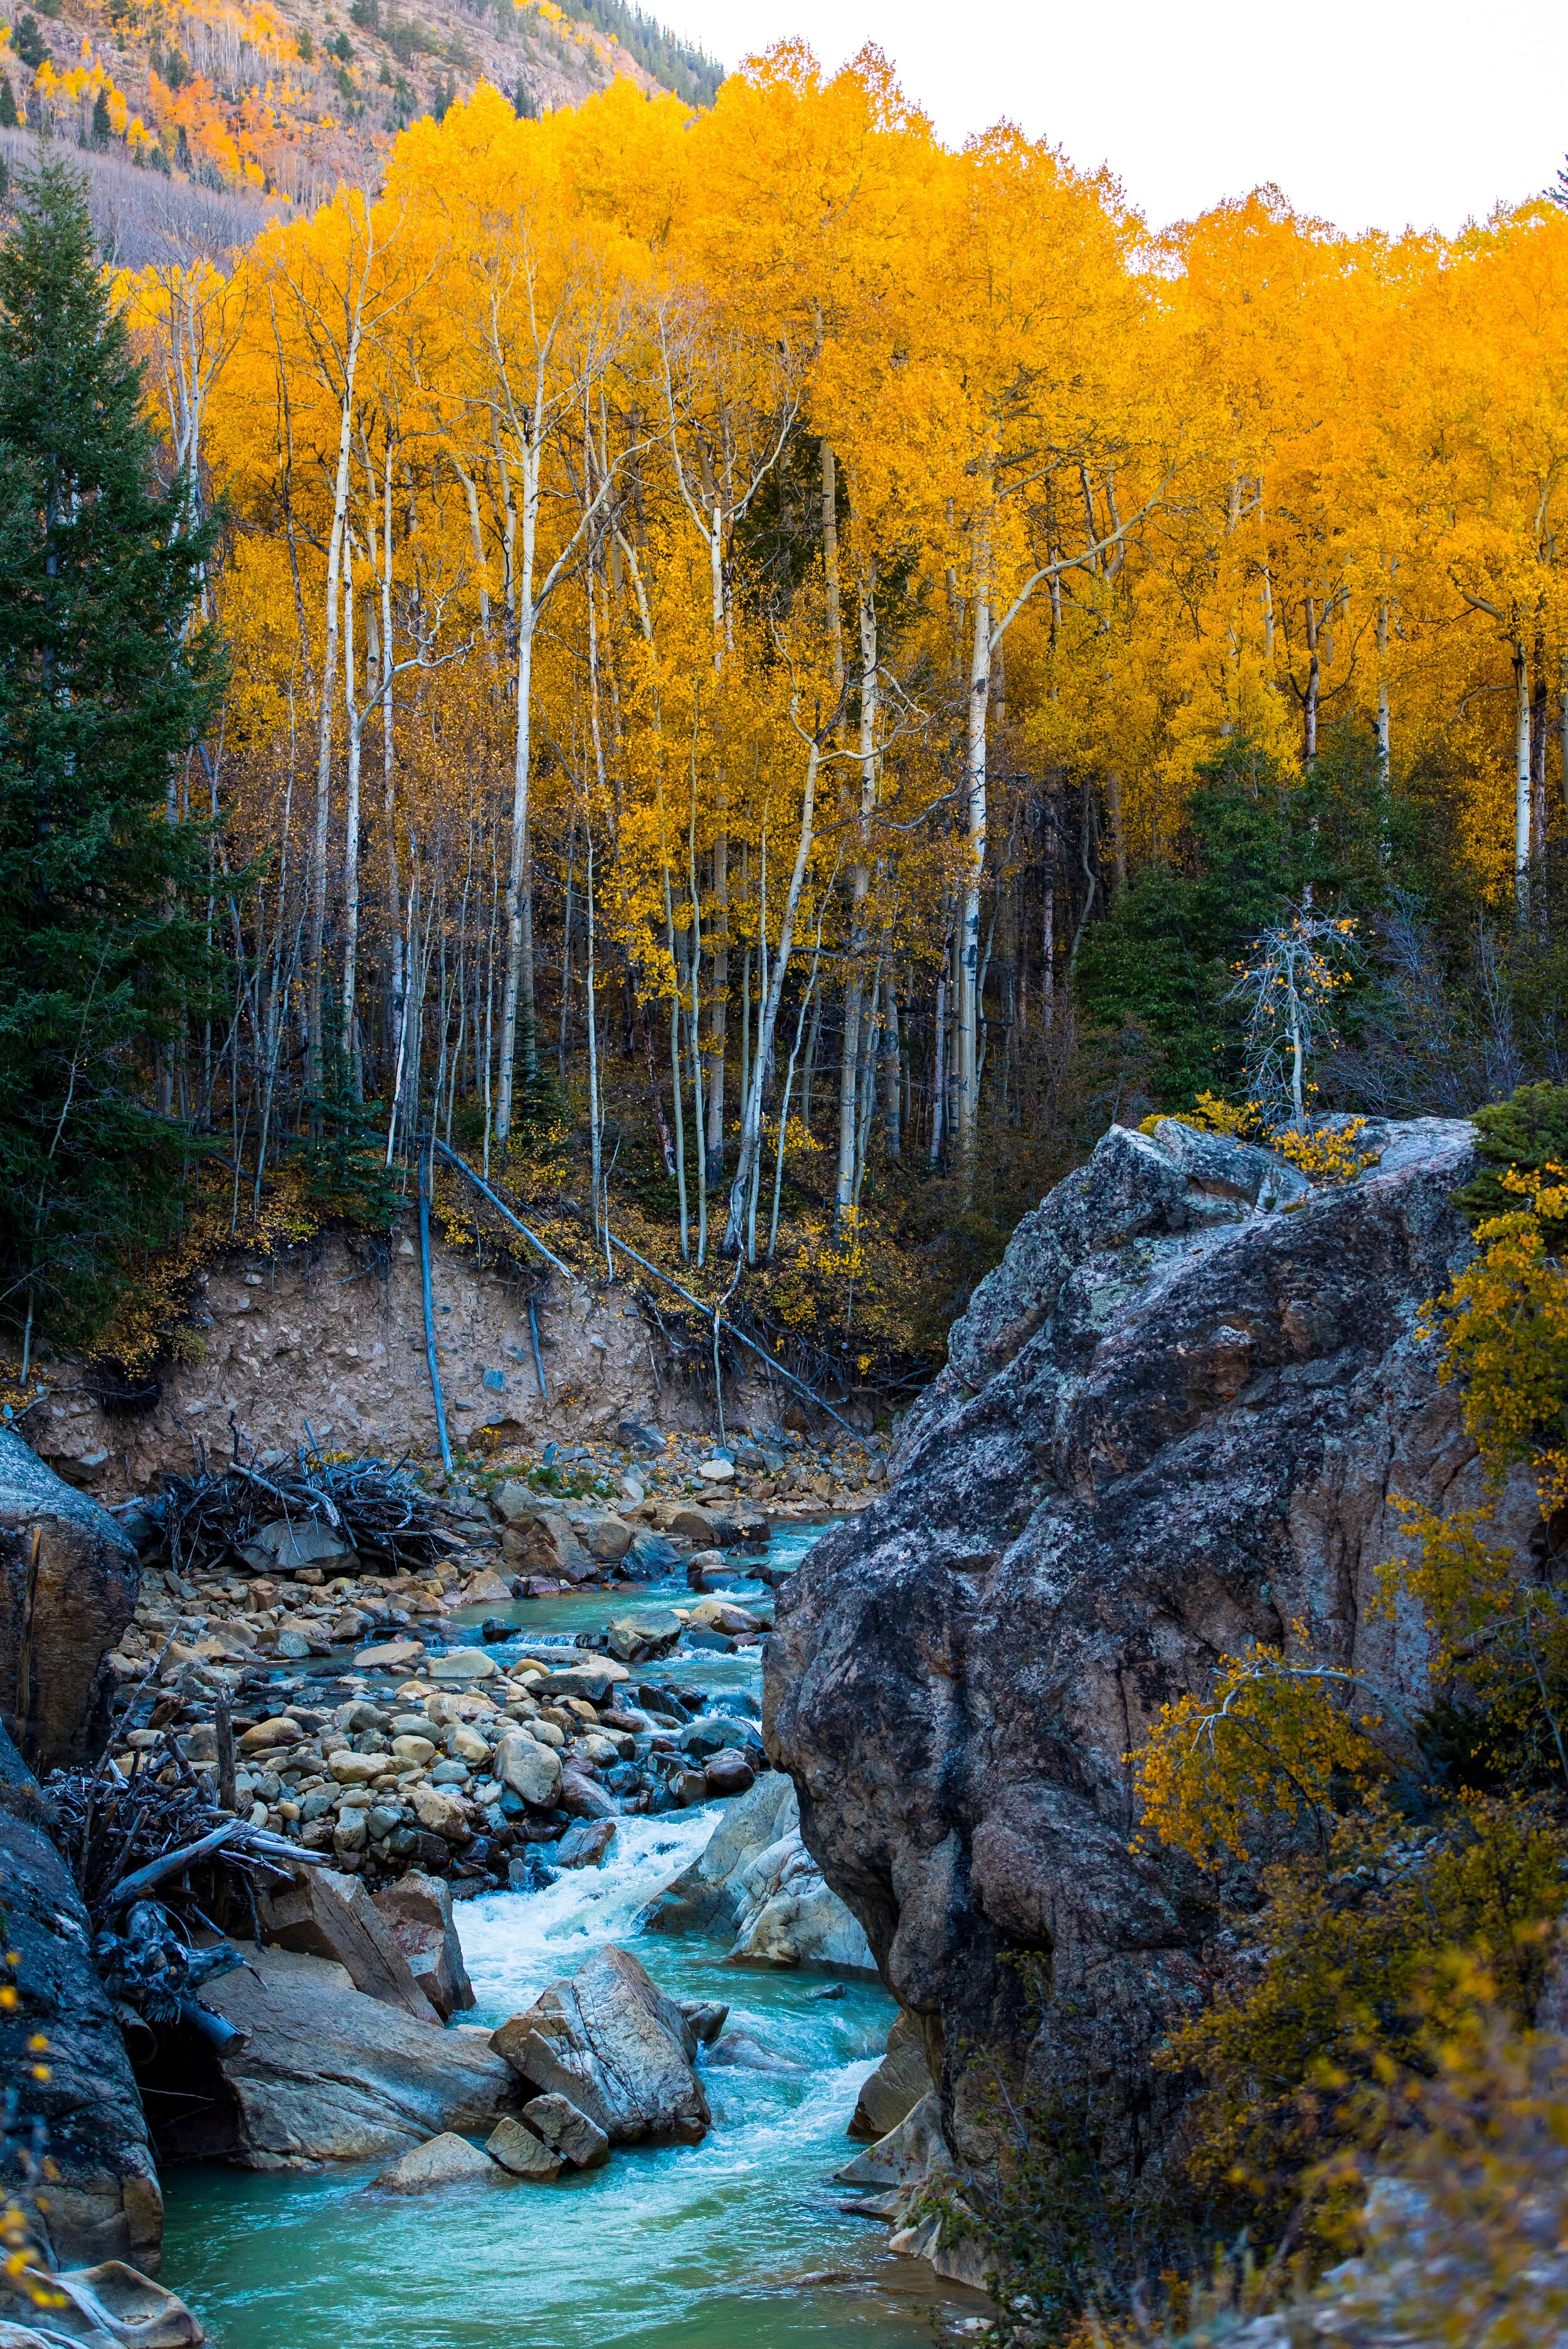 Stream cutting through forest edge,  Nathan Anderson